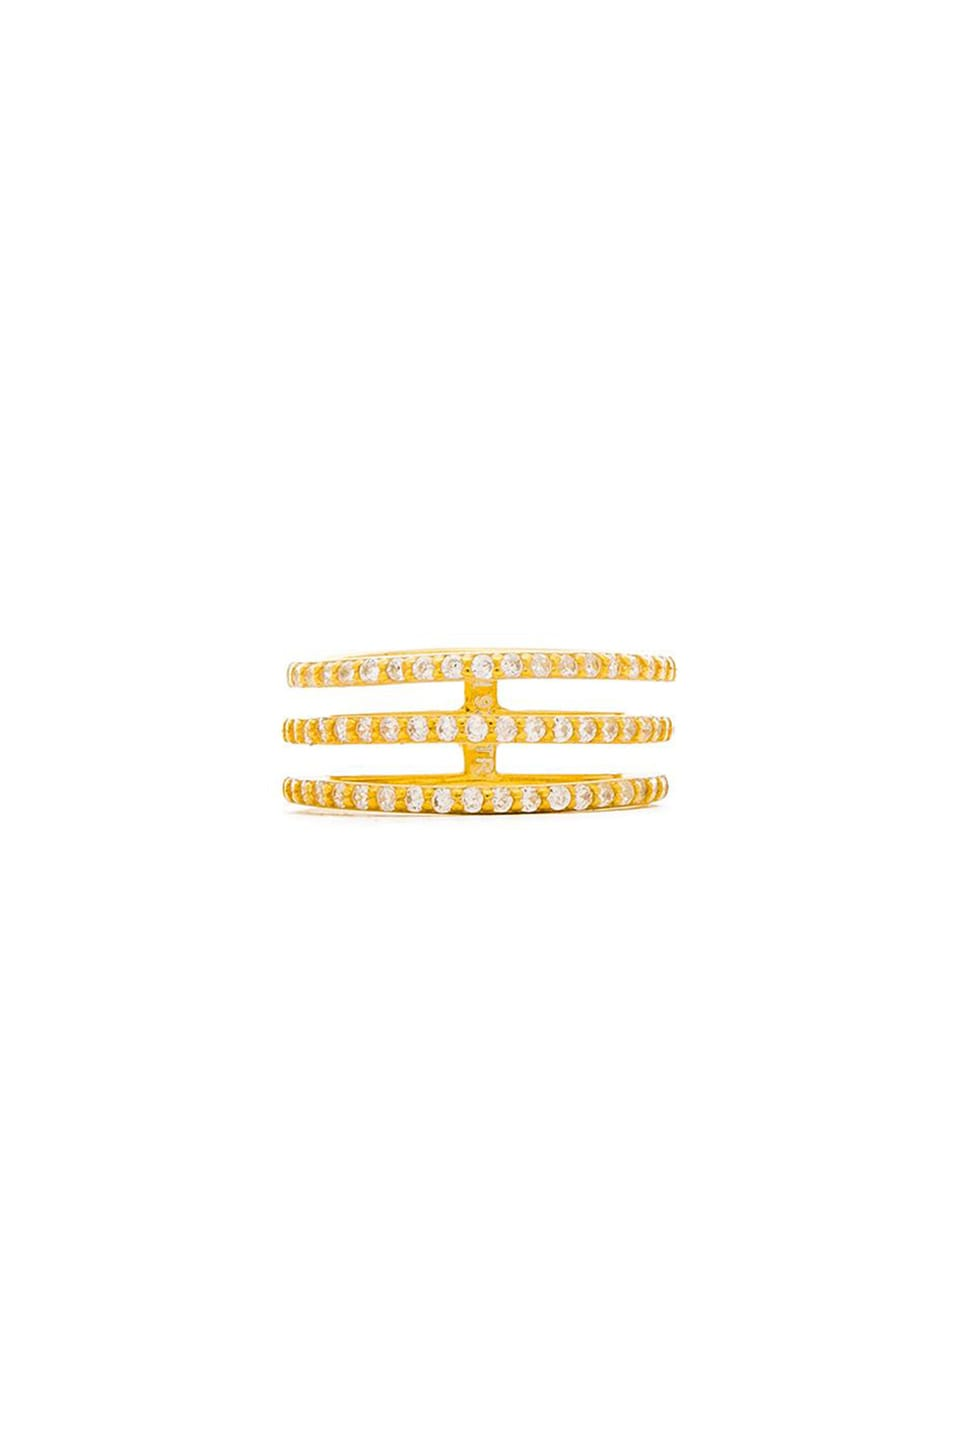 Lucky Star Daybreak Ring in Gold